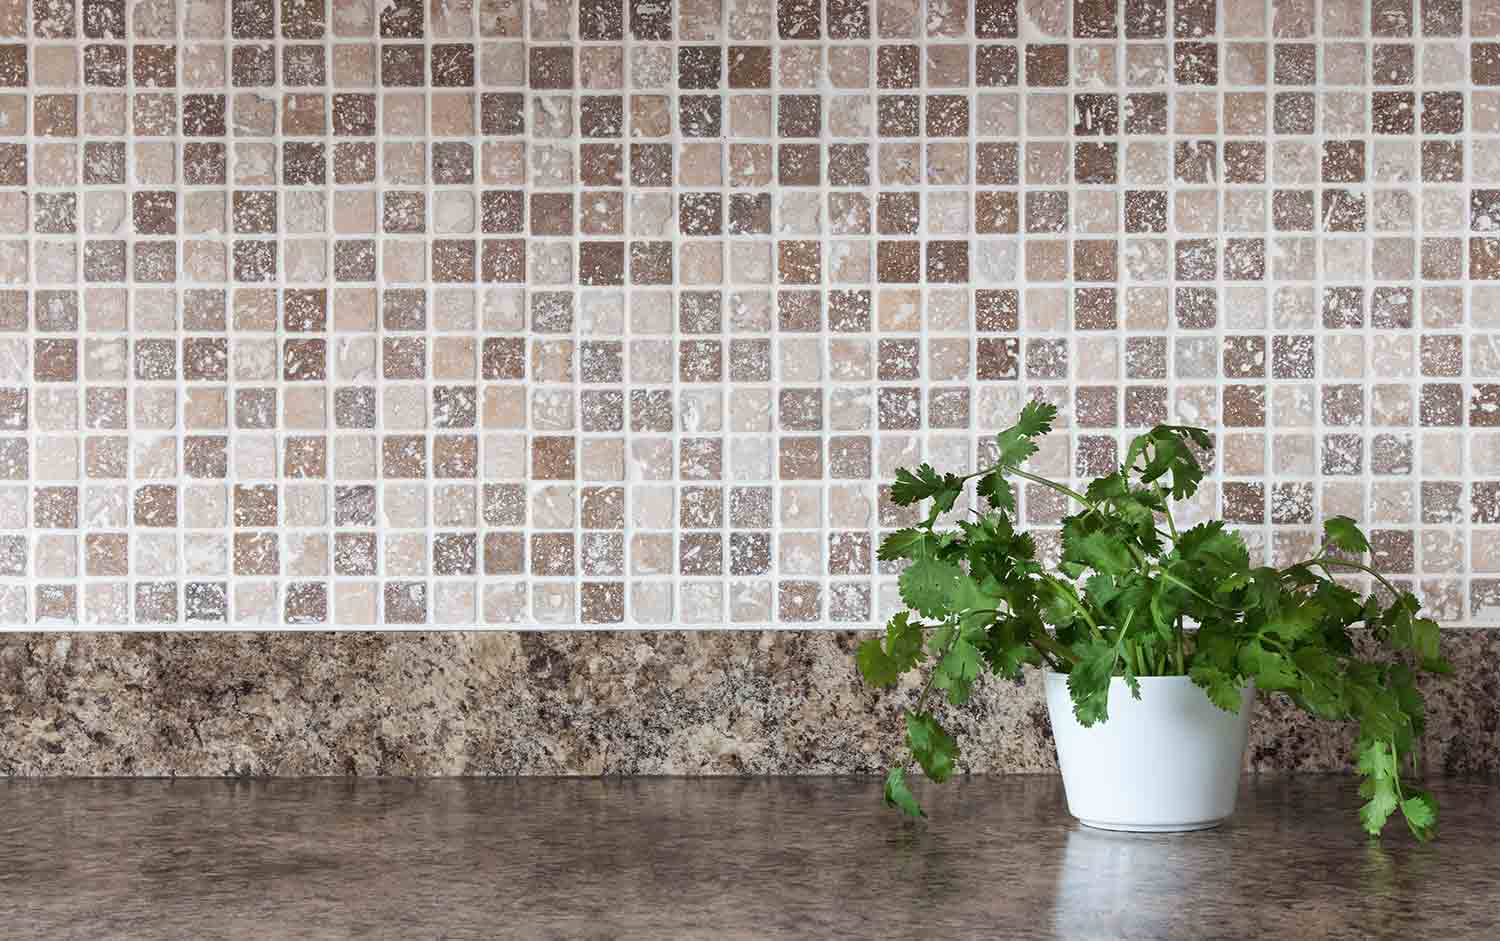 granite countertop with a backsplash. there is a plant with a white pot in the shot.